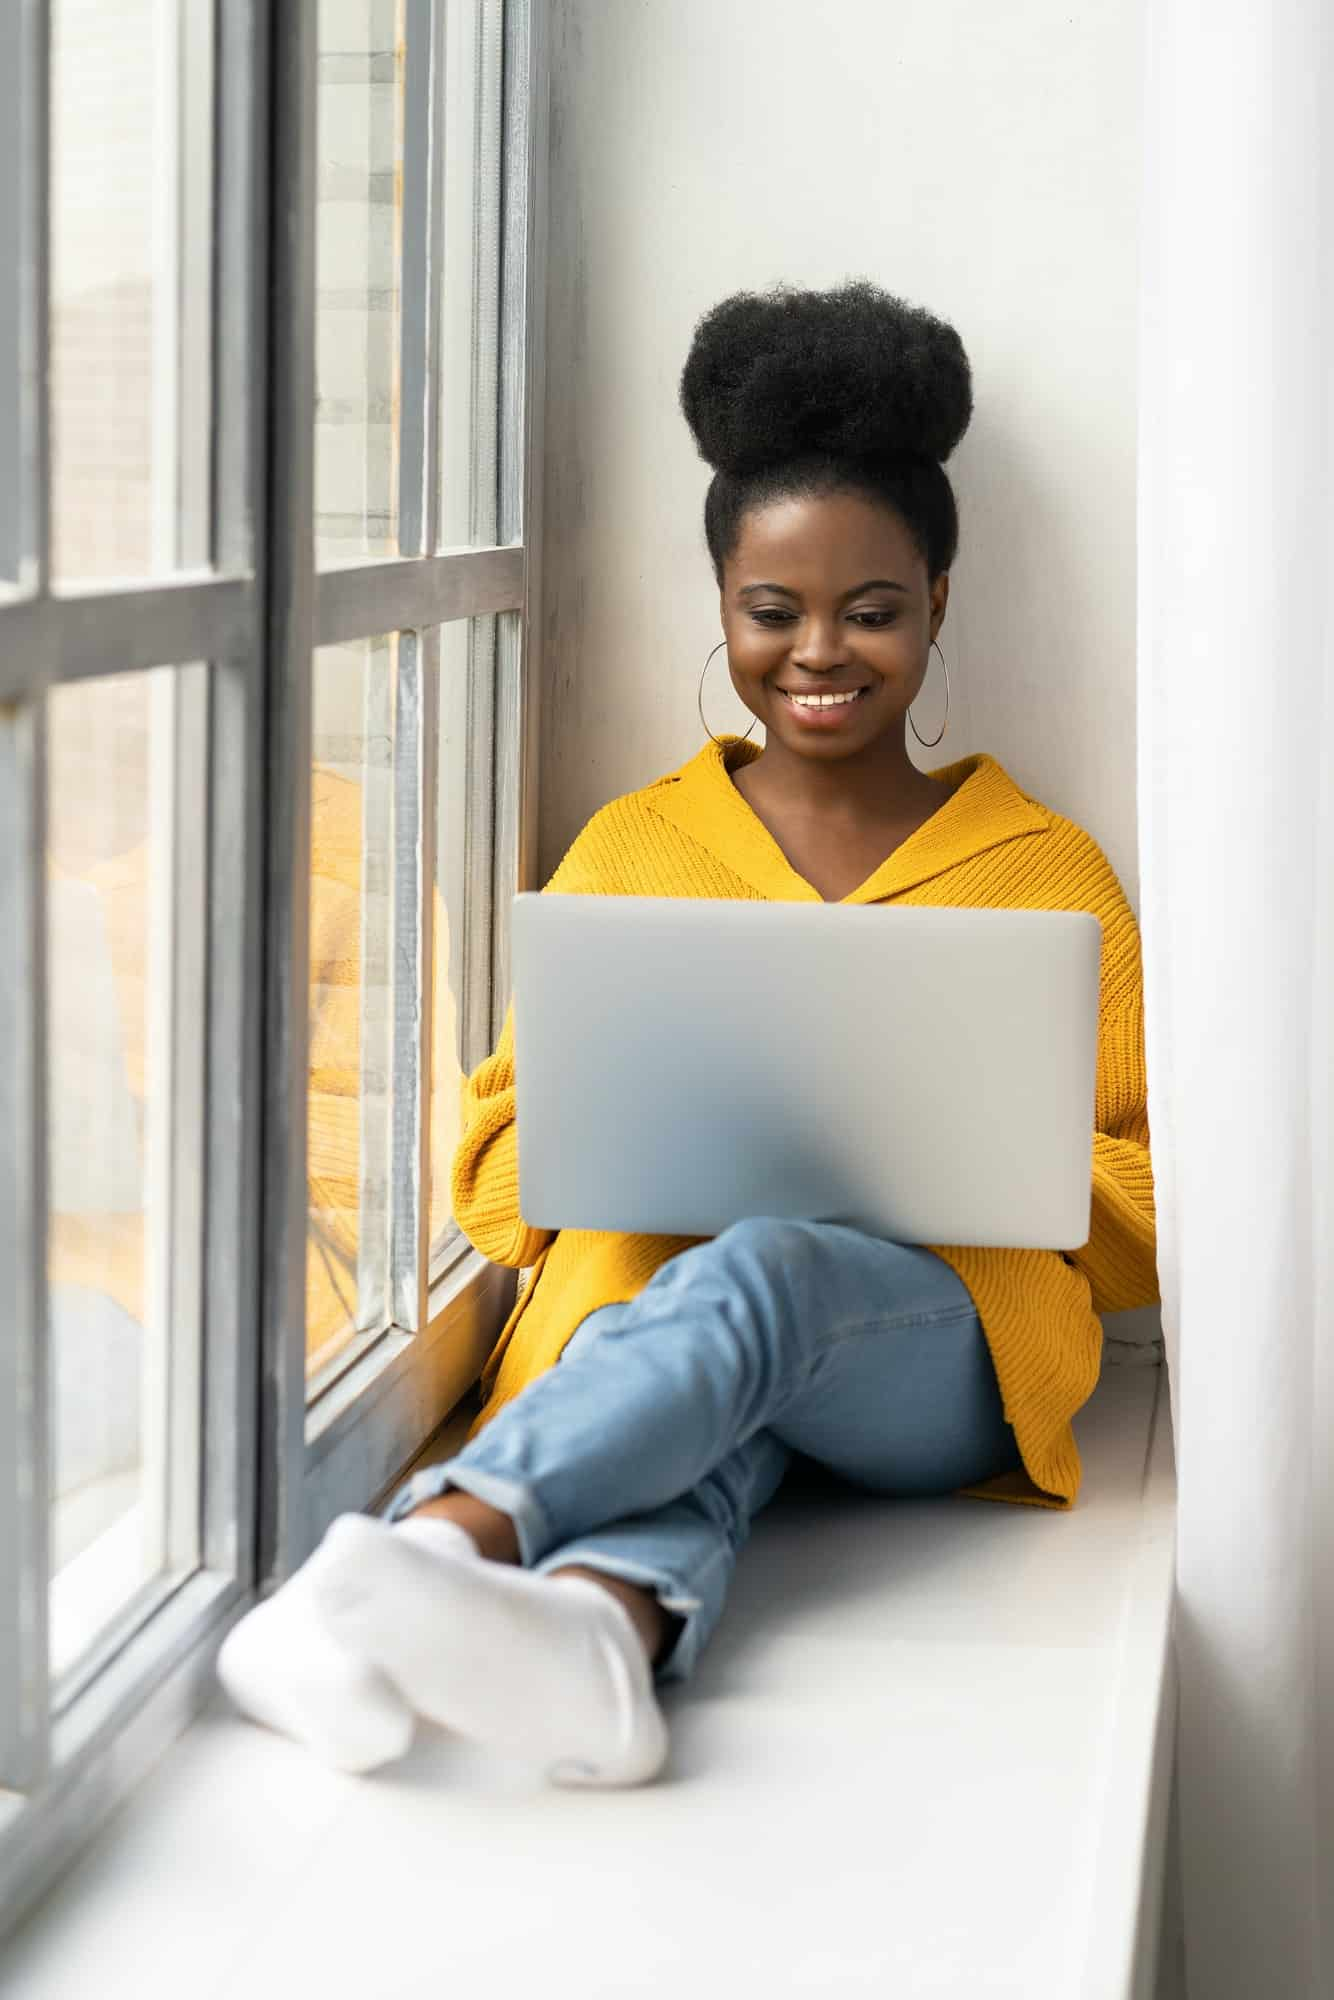 Smiling Black woman in yellow cardigan sitting on windowsill working on laptop talking in video chat